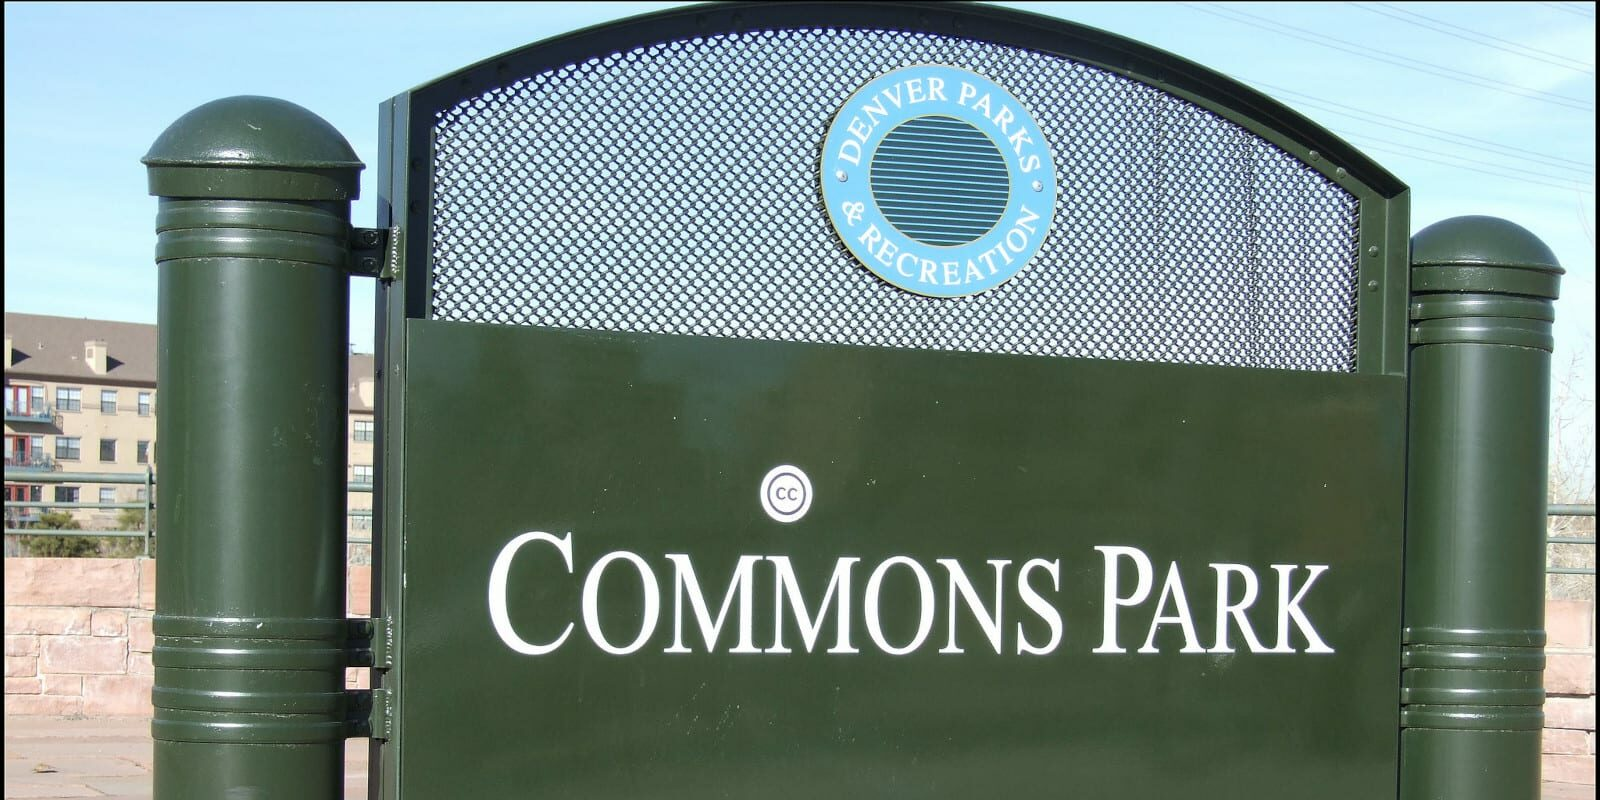 Image of the Commons Park sign in Denver, Colorado